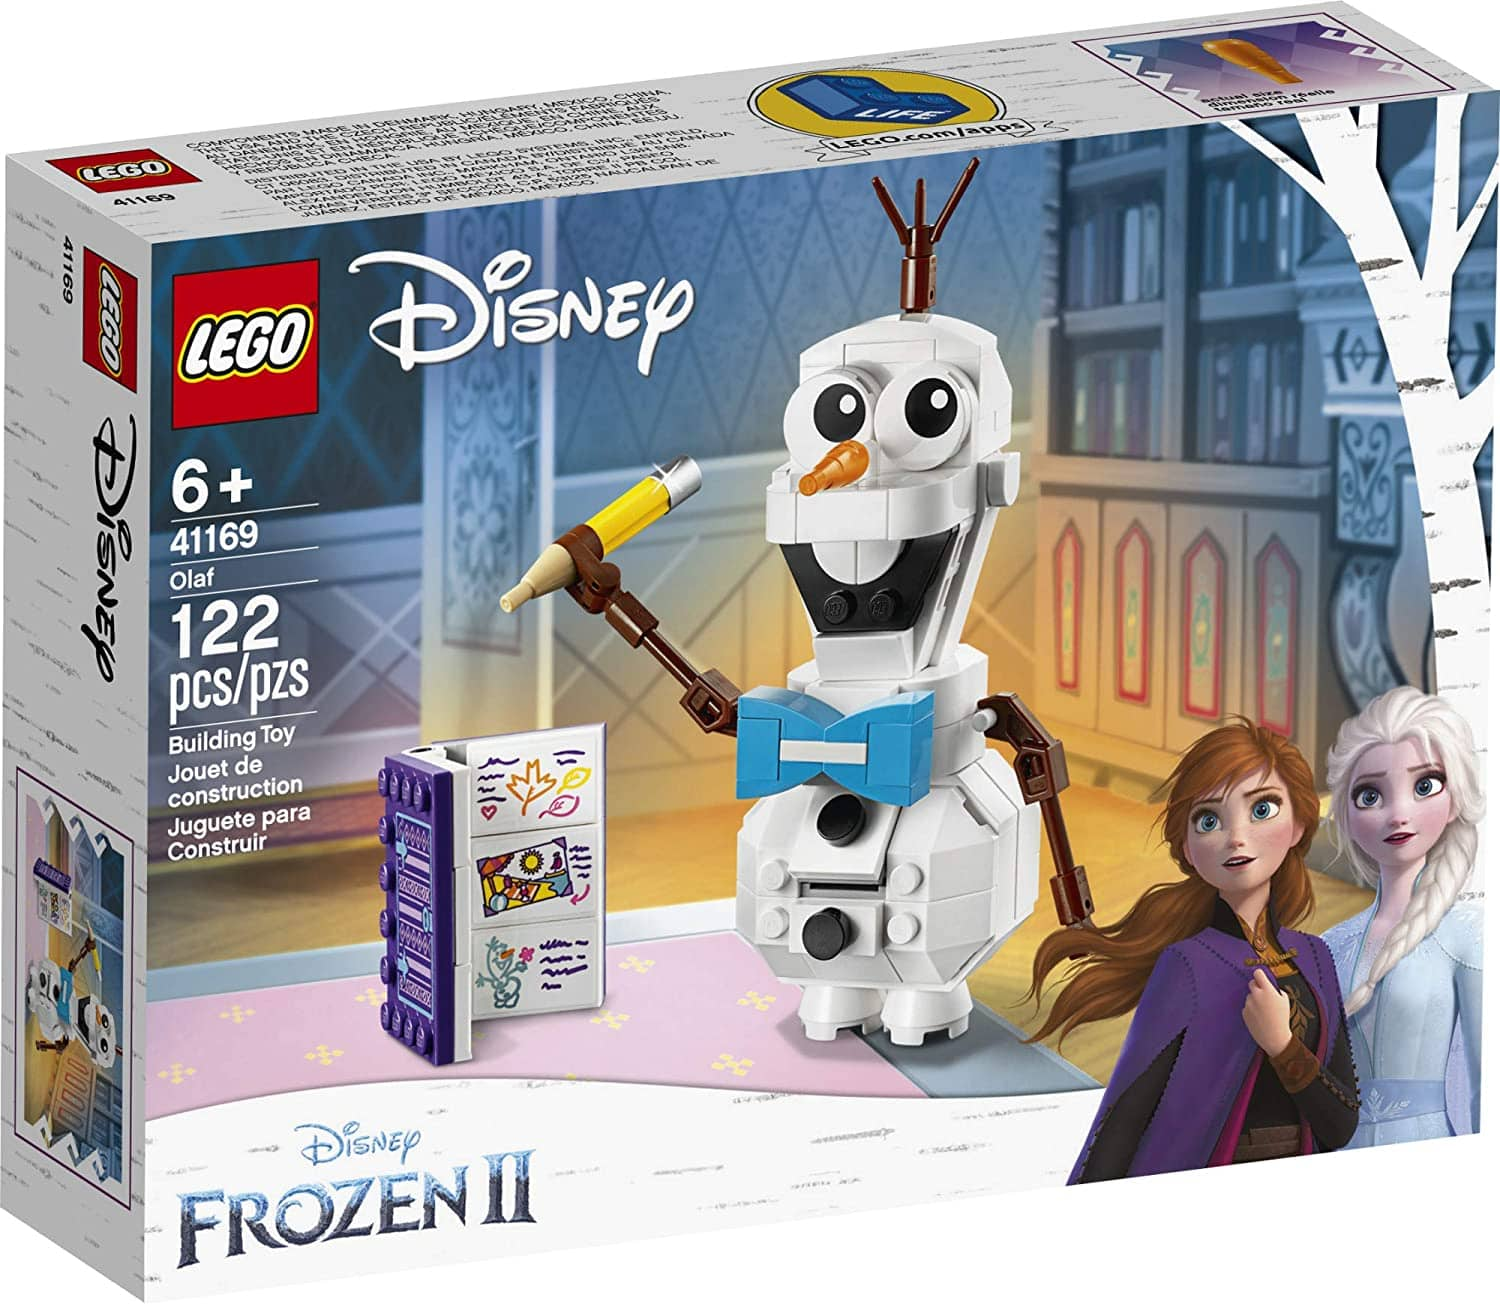 LEGO Disney Frozen II Olaf the Snowman Toy Figure Building Kit